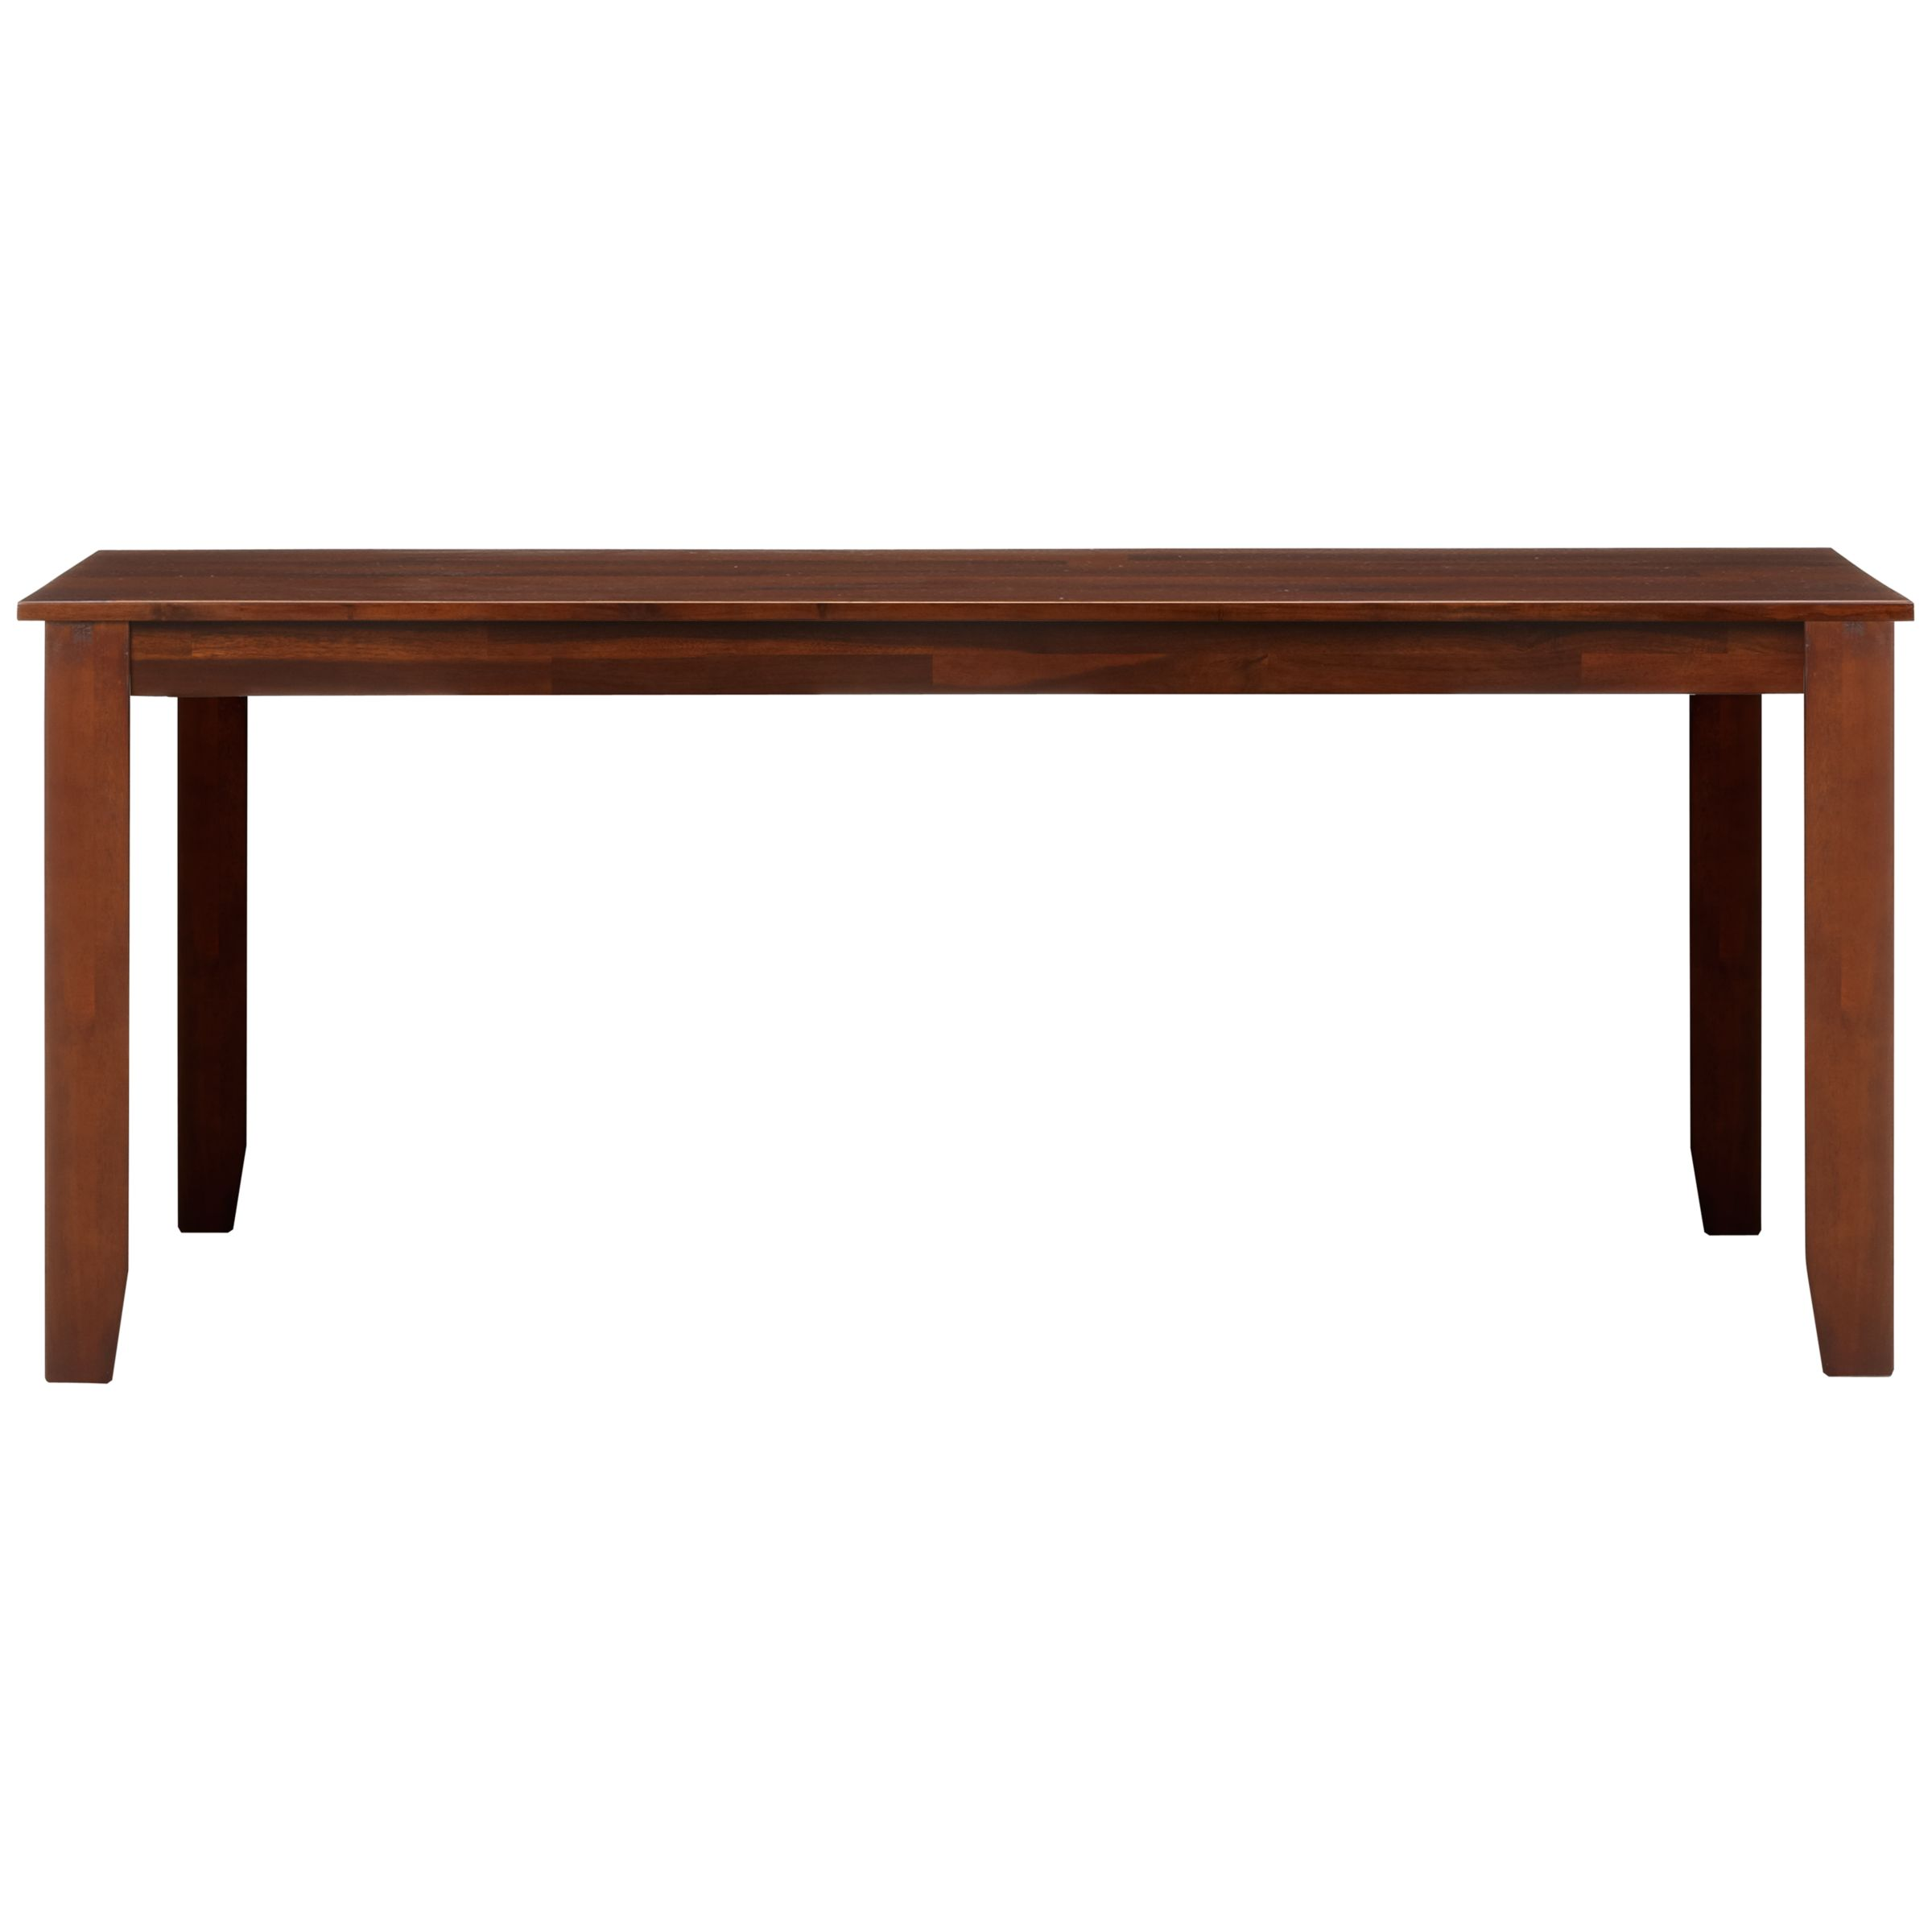 john lewis dining tables : 231213510 from www.comparestoreprices.co.uk size 1600 x 1600 jpeg 73kB